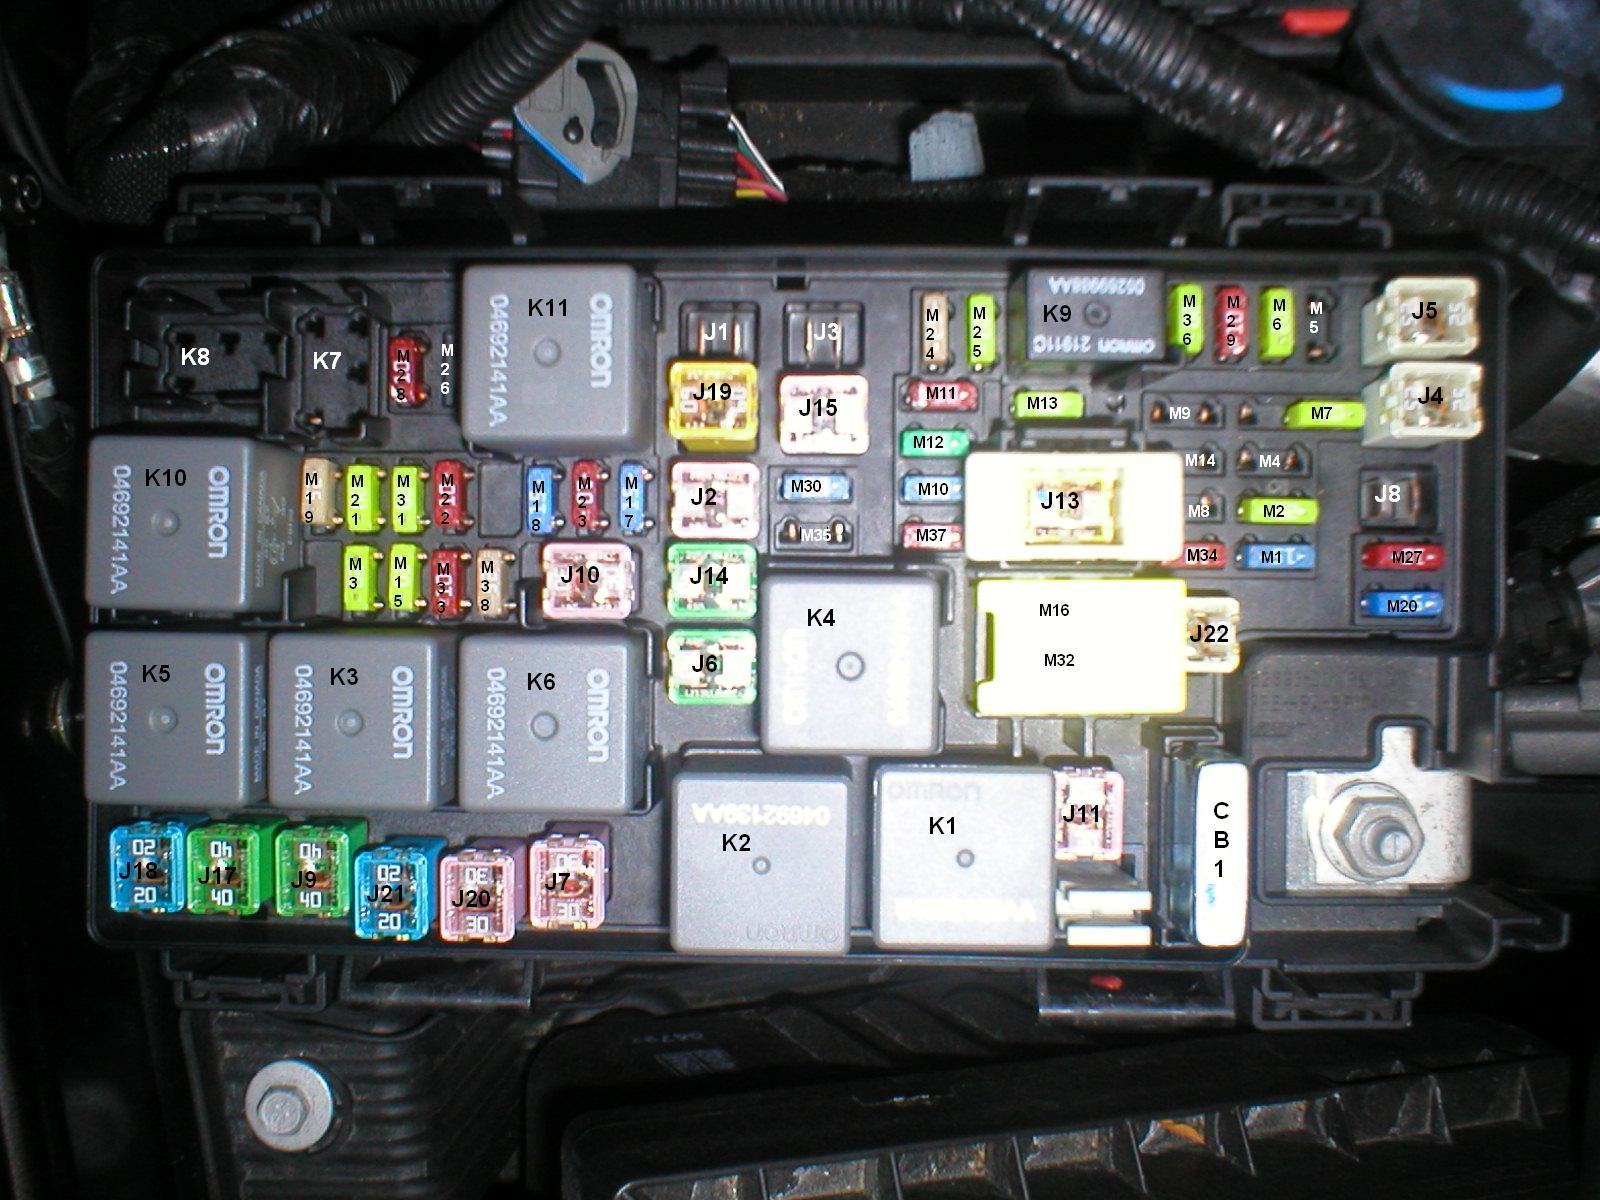 hight resolution of jeep jk fuse box diagram wiring diagram namejeep jk fuse box map layout diagram jeepforum com